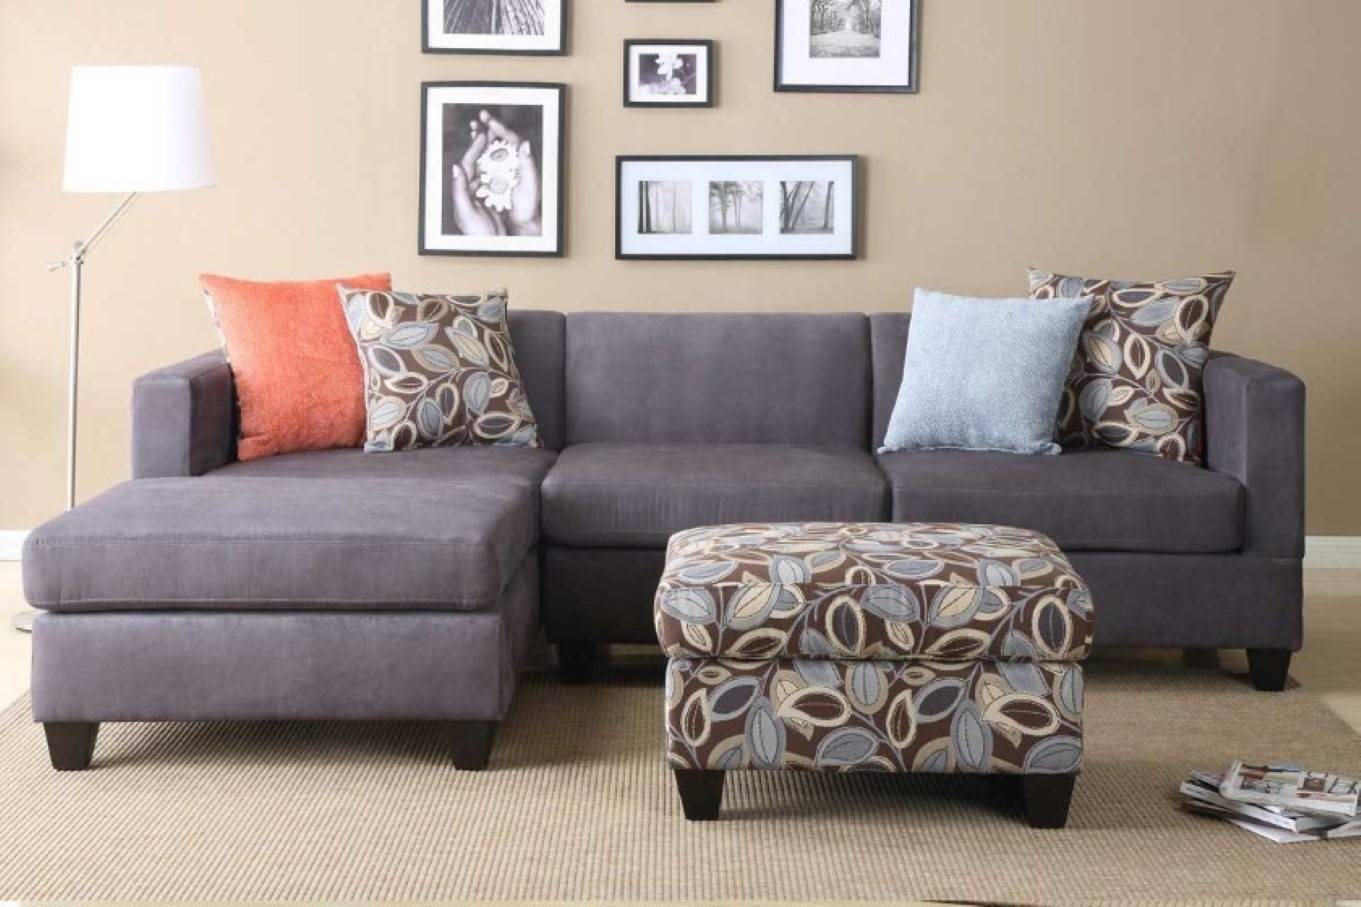 3 Piece Sectional Sleeper Sofa – Ansugallery Inside 3 Piece Sectional Sleeper Sofa (View 3 of 30)